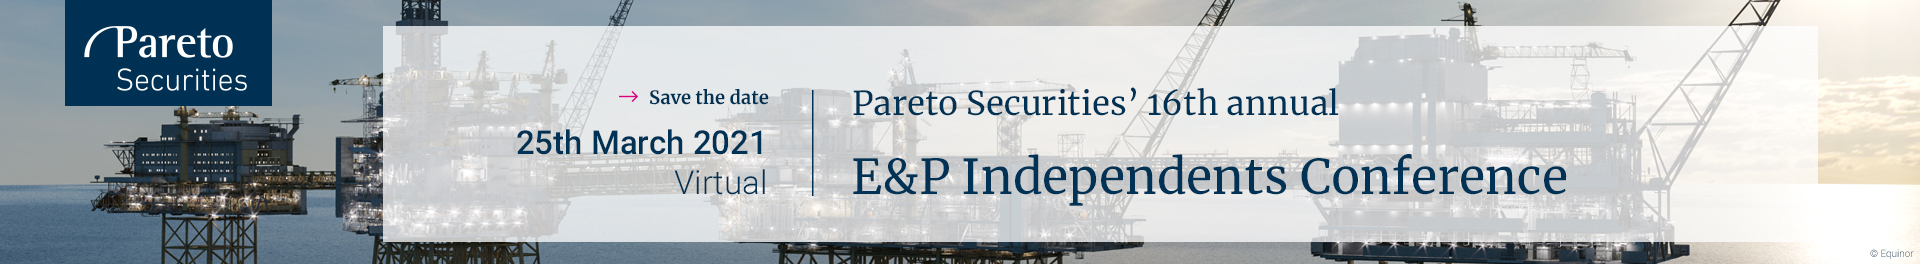 Header image for Pareto Securities' 16th annual E&P Independents Conference